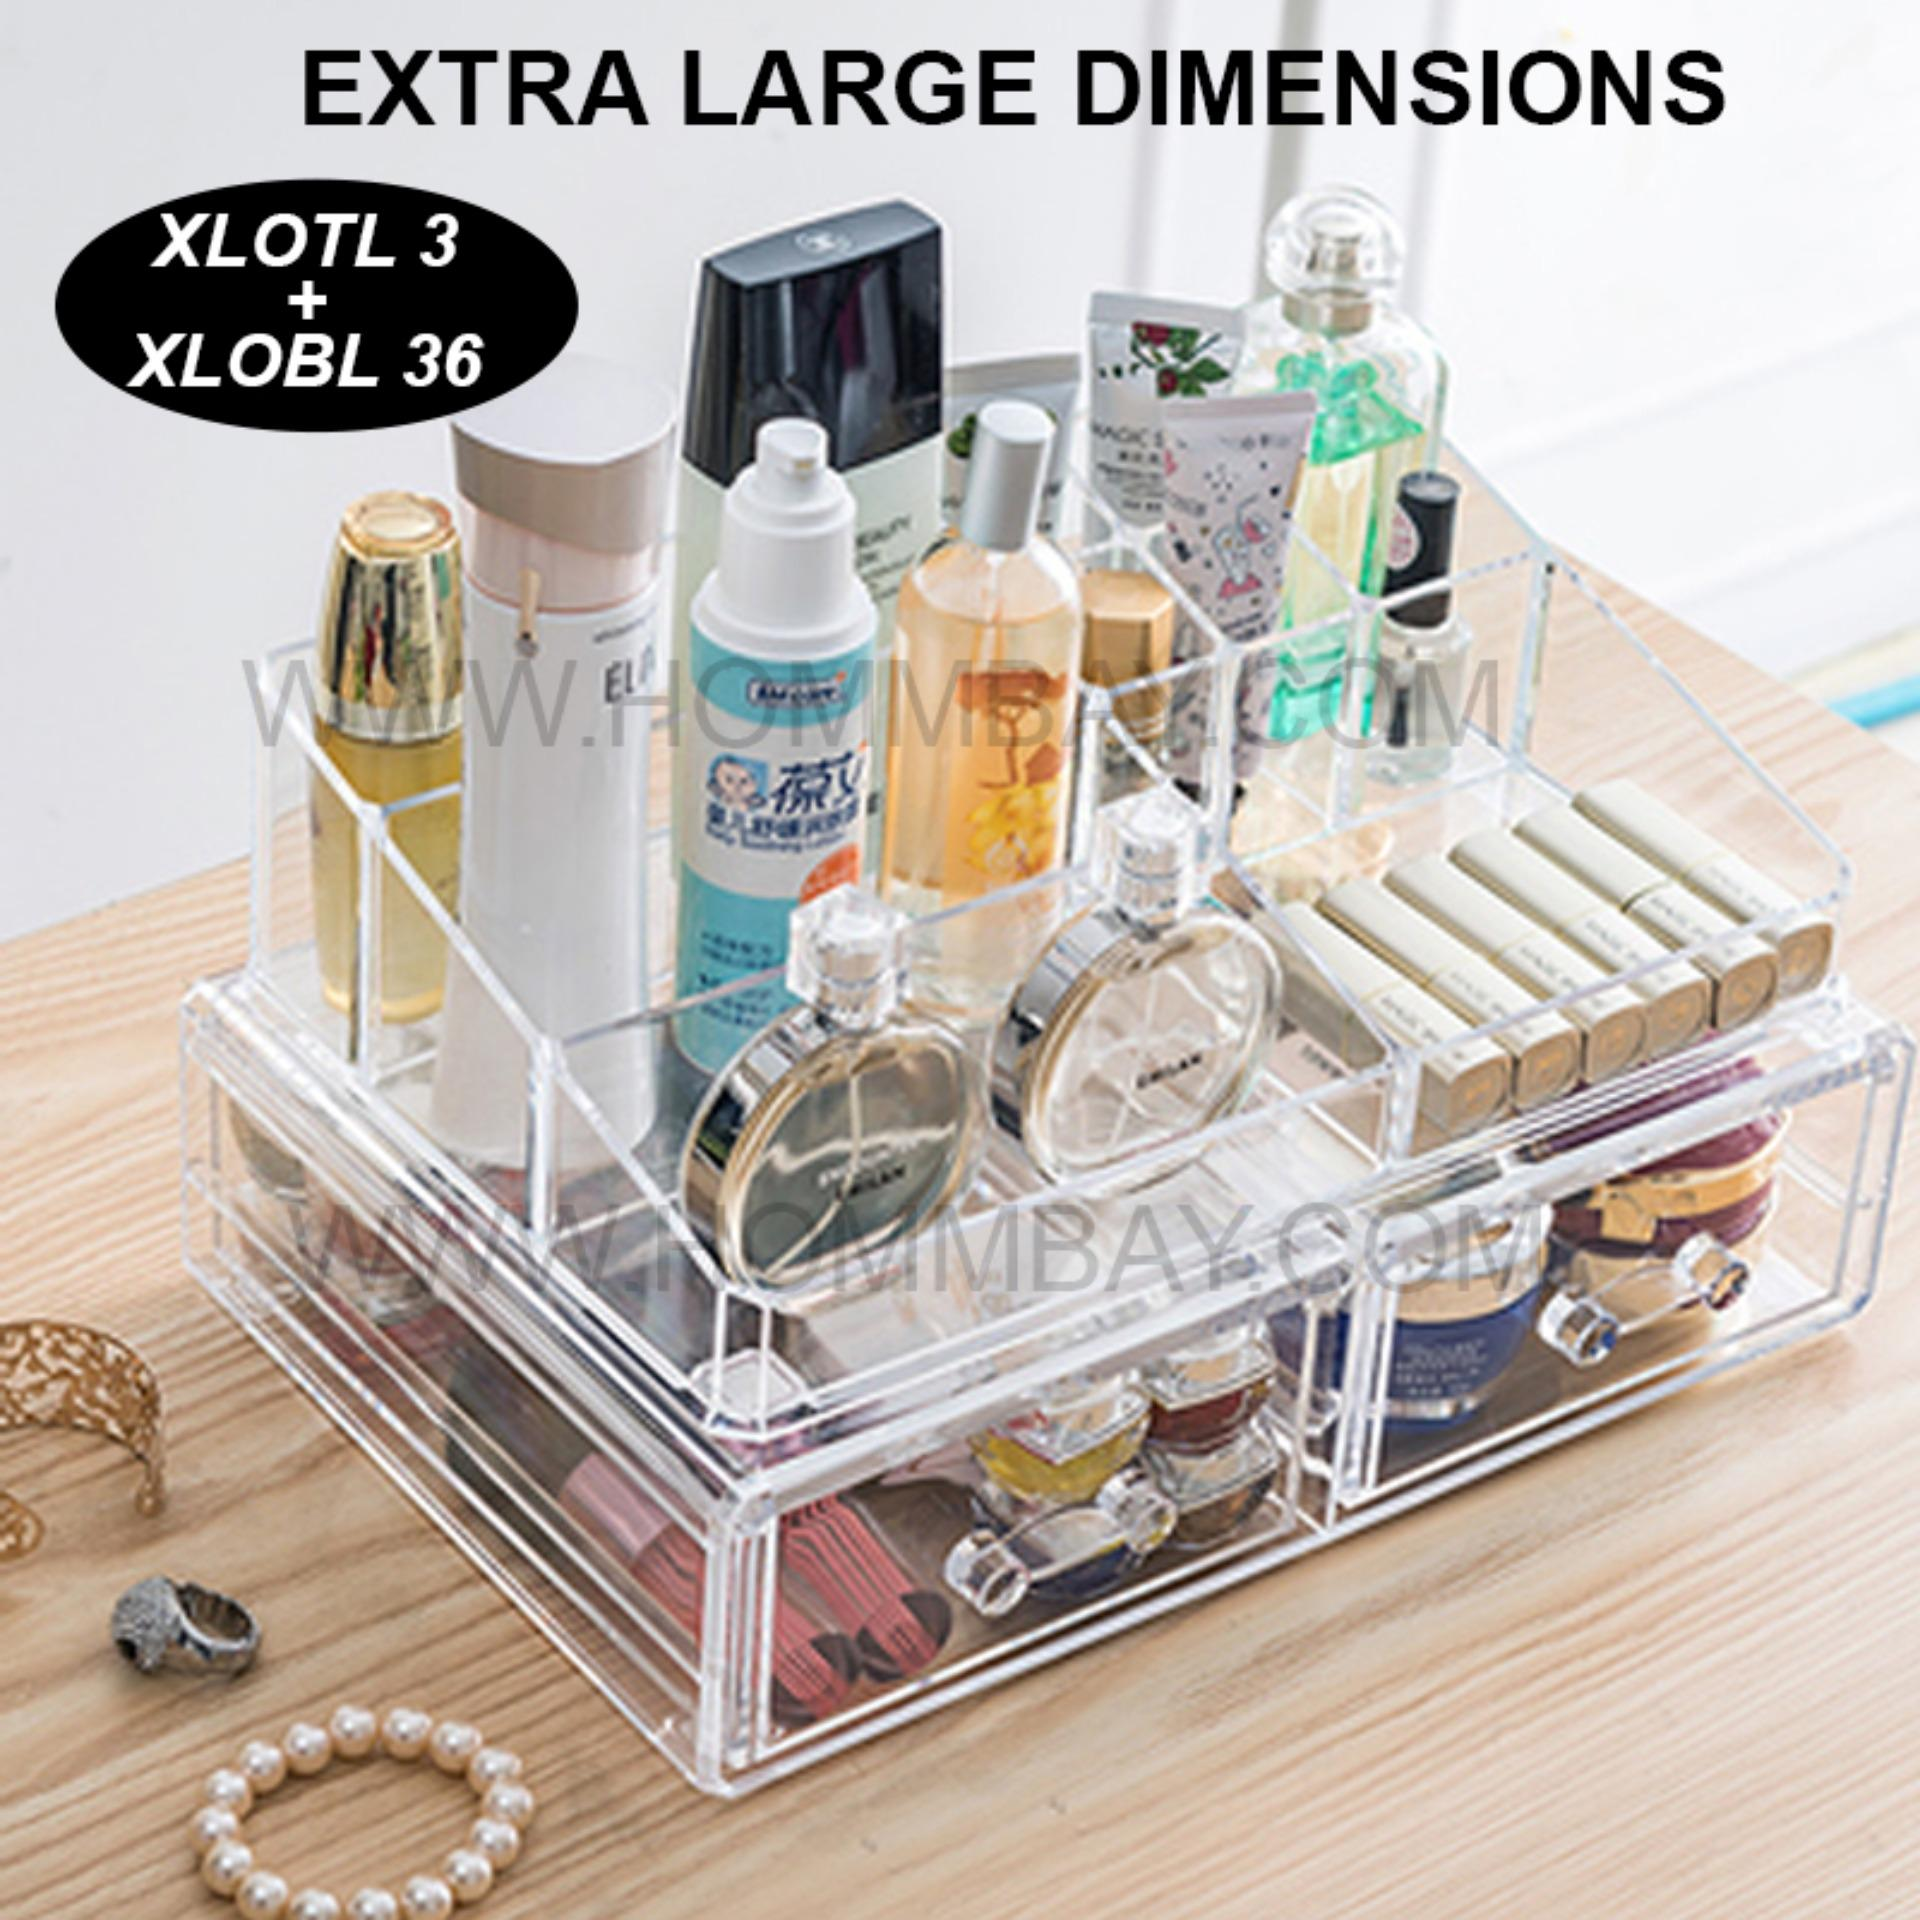 Clear Acrylic Transparent Make Up Makeup Cosmetic Jewellery Jewelry Organiser Organizer Drawer Storage Box Holder I Extra Large I Stackable I XLOTL 3 I XLOBL 36